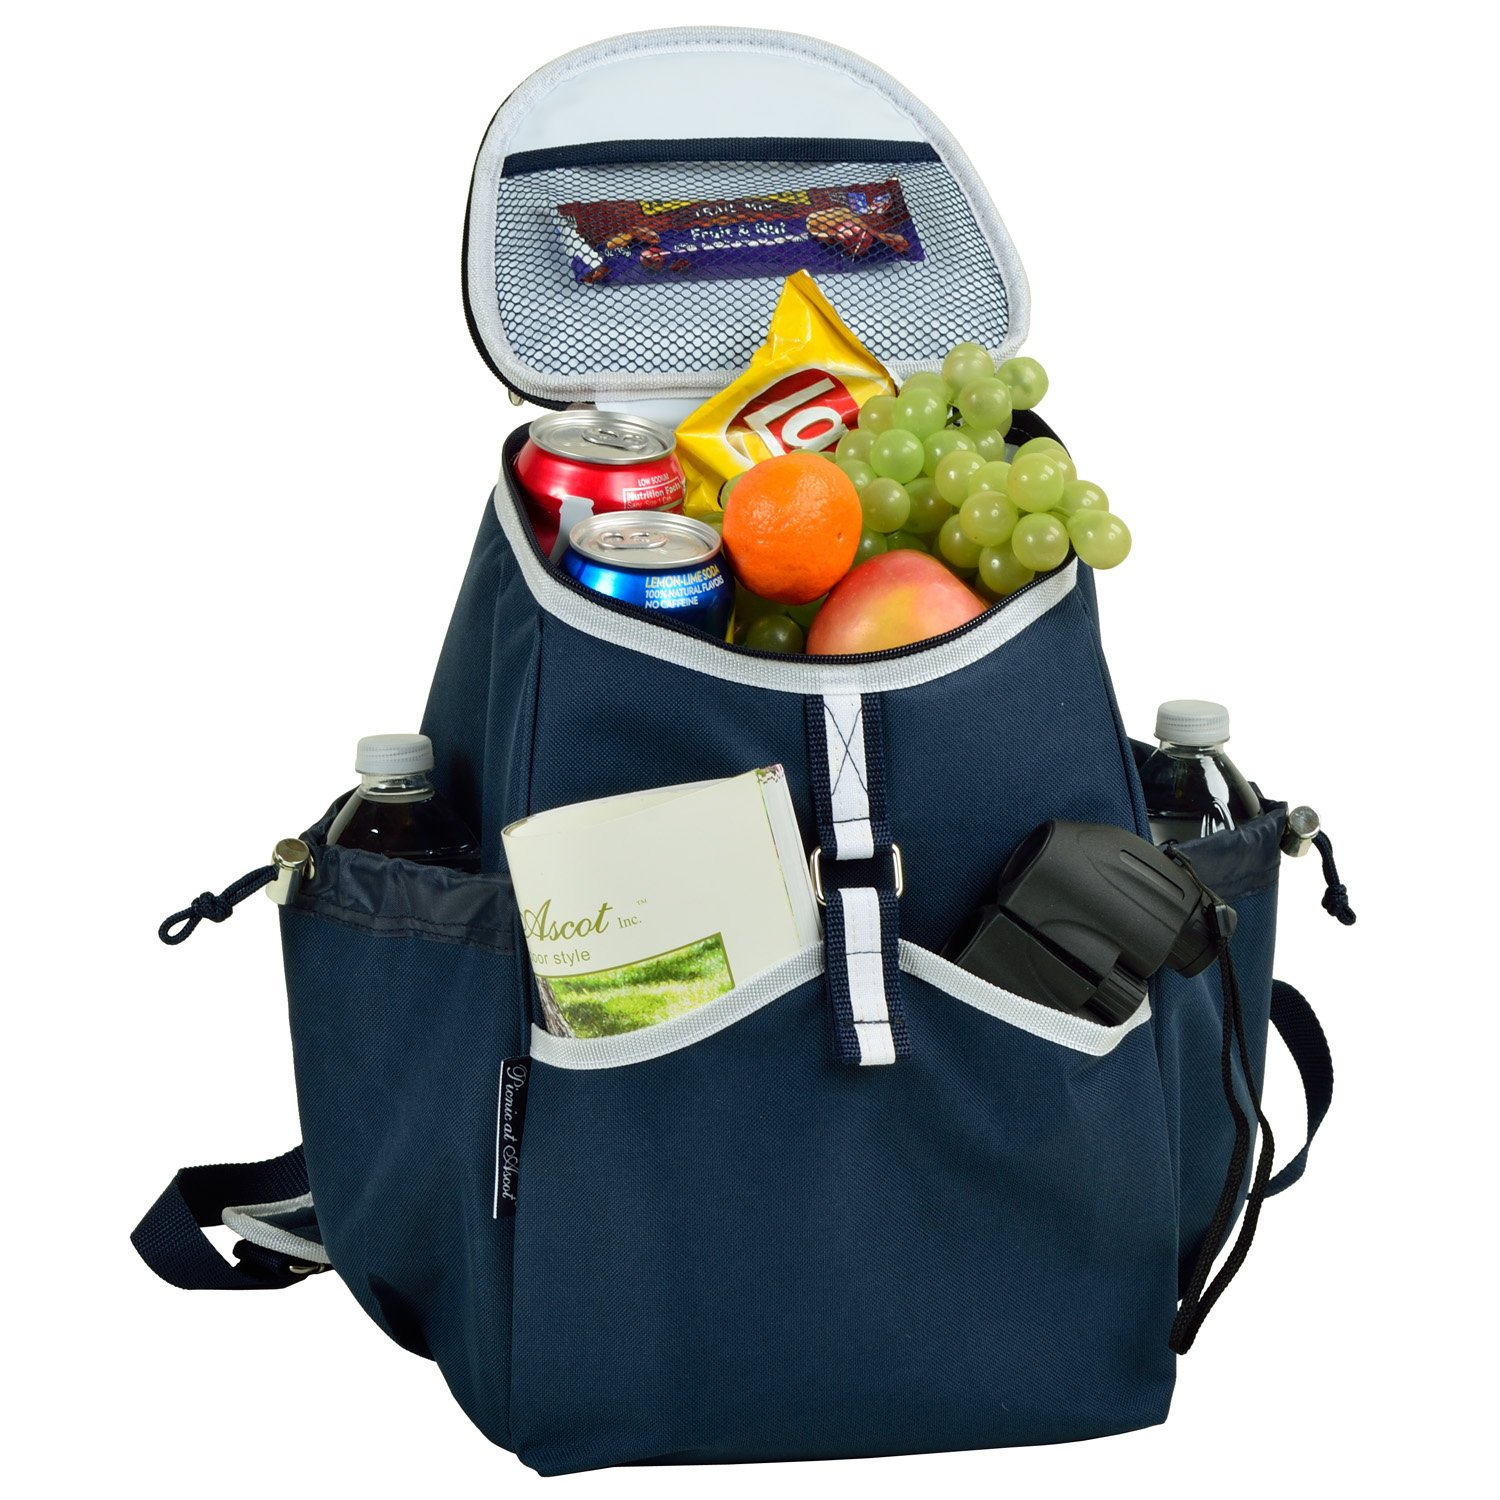 Picnic at Ascot Original Insulated Backpack Cooler- Designed & Quality Approved in the USA by Picnic at Ascot